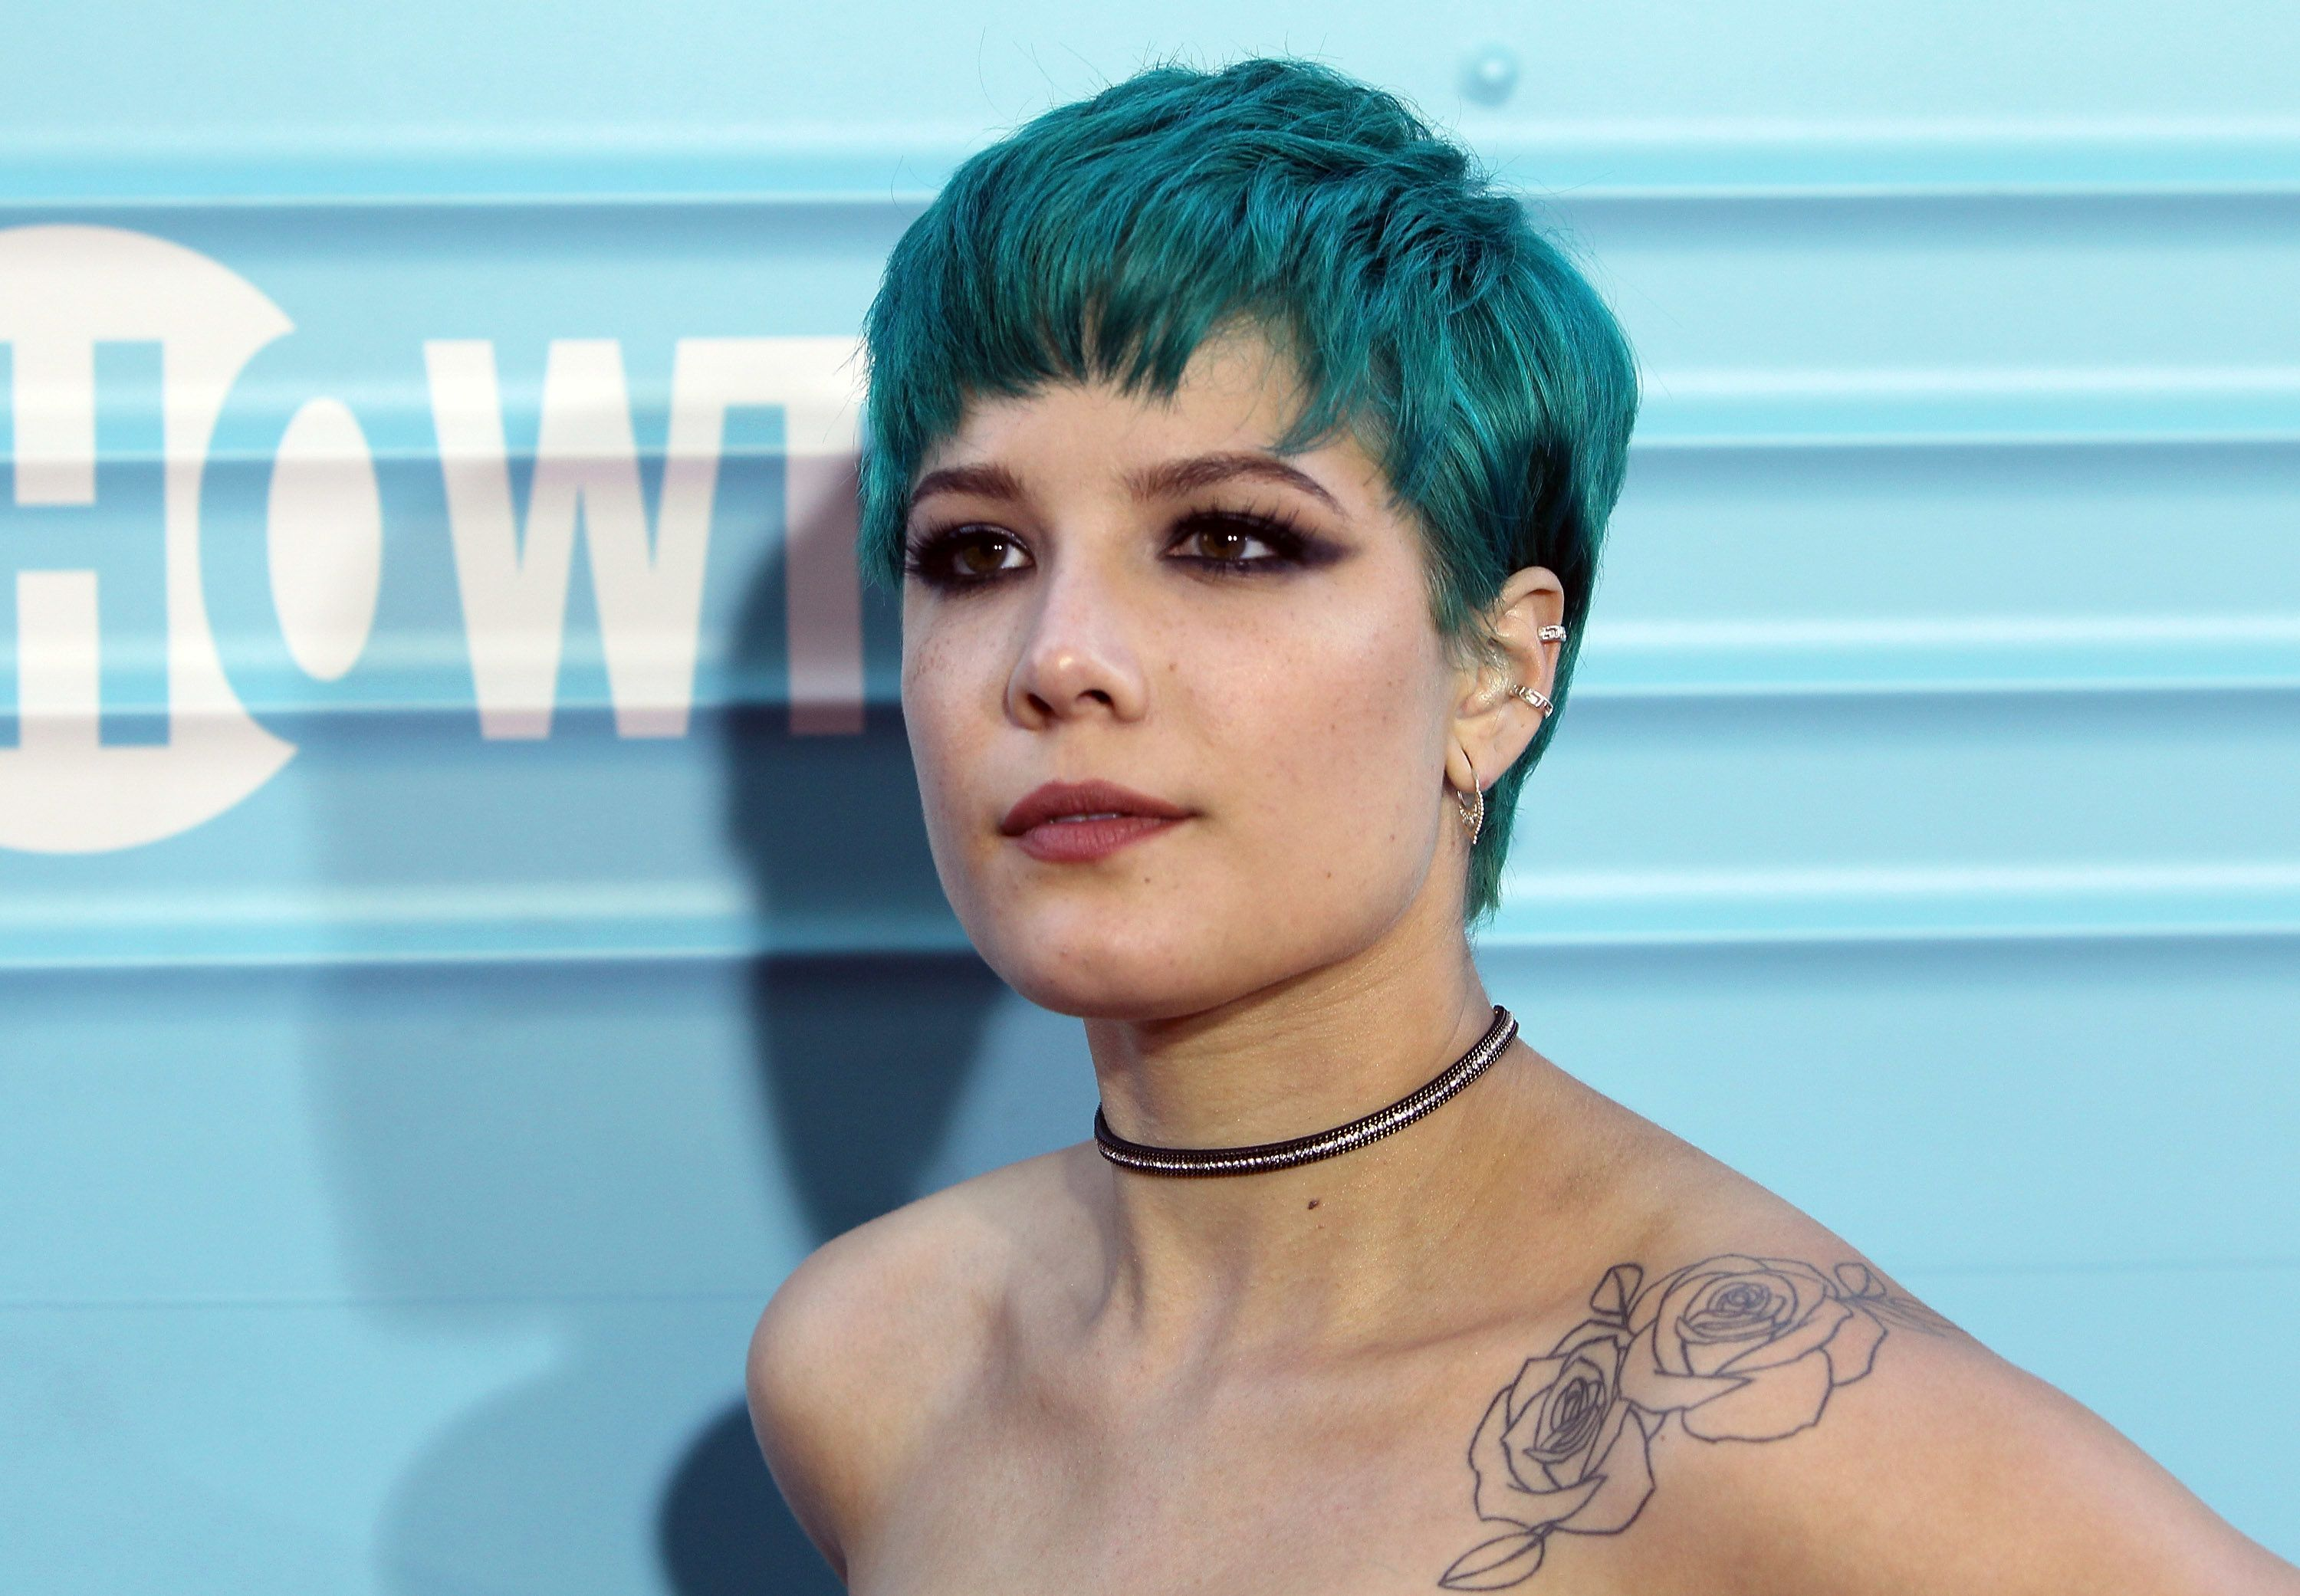 LOS ANGELES, CA - JUNE 06:  Singer Halsey attends the premiere of Showtime's 'Roadies' at The Theatre at Ace Hotel on June 6, 2016 in Los Angeles, California.  (Photo by David Livingston/Getty Images)